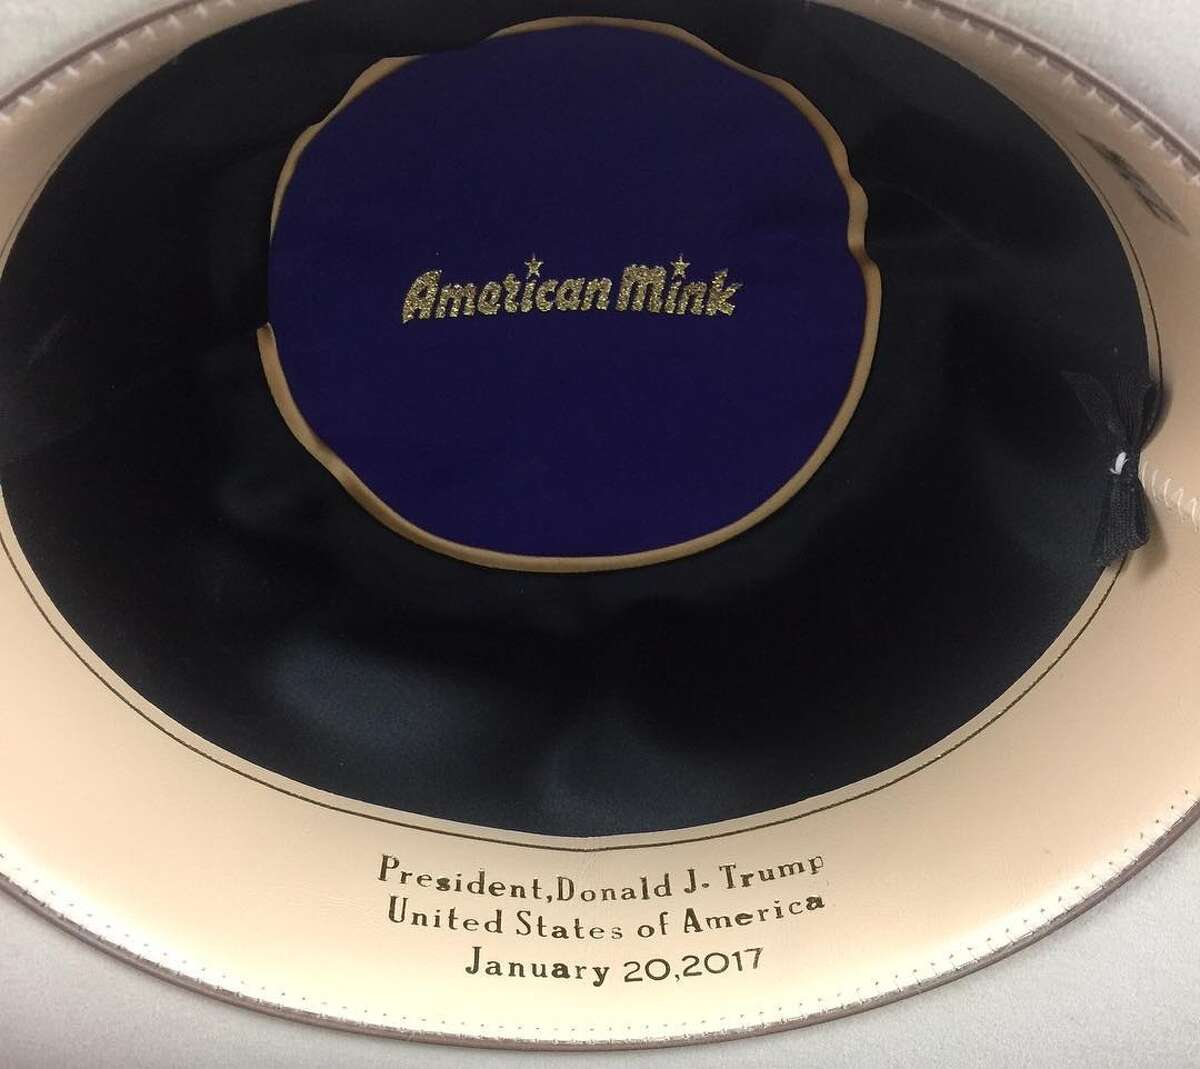 American Hat Company in Bowie, Texas, has made a cowboy hat specifically for president-elect Donald Trump after he commented on how much he liked Texas Agriculture Commissioner Sid Miller's hat. American Hat Company makes hats for Miller and other high-profile people. Click through the slideshow to see how cowboys hats are made.